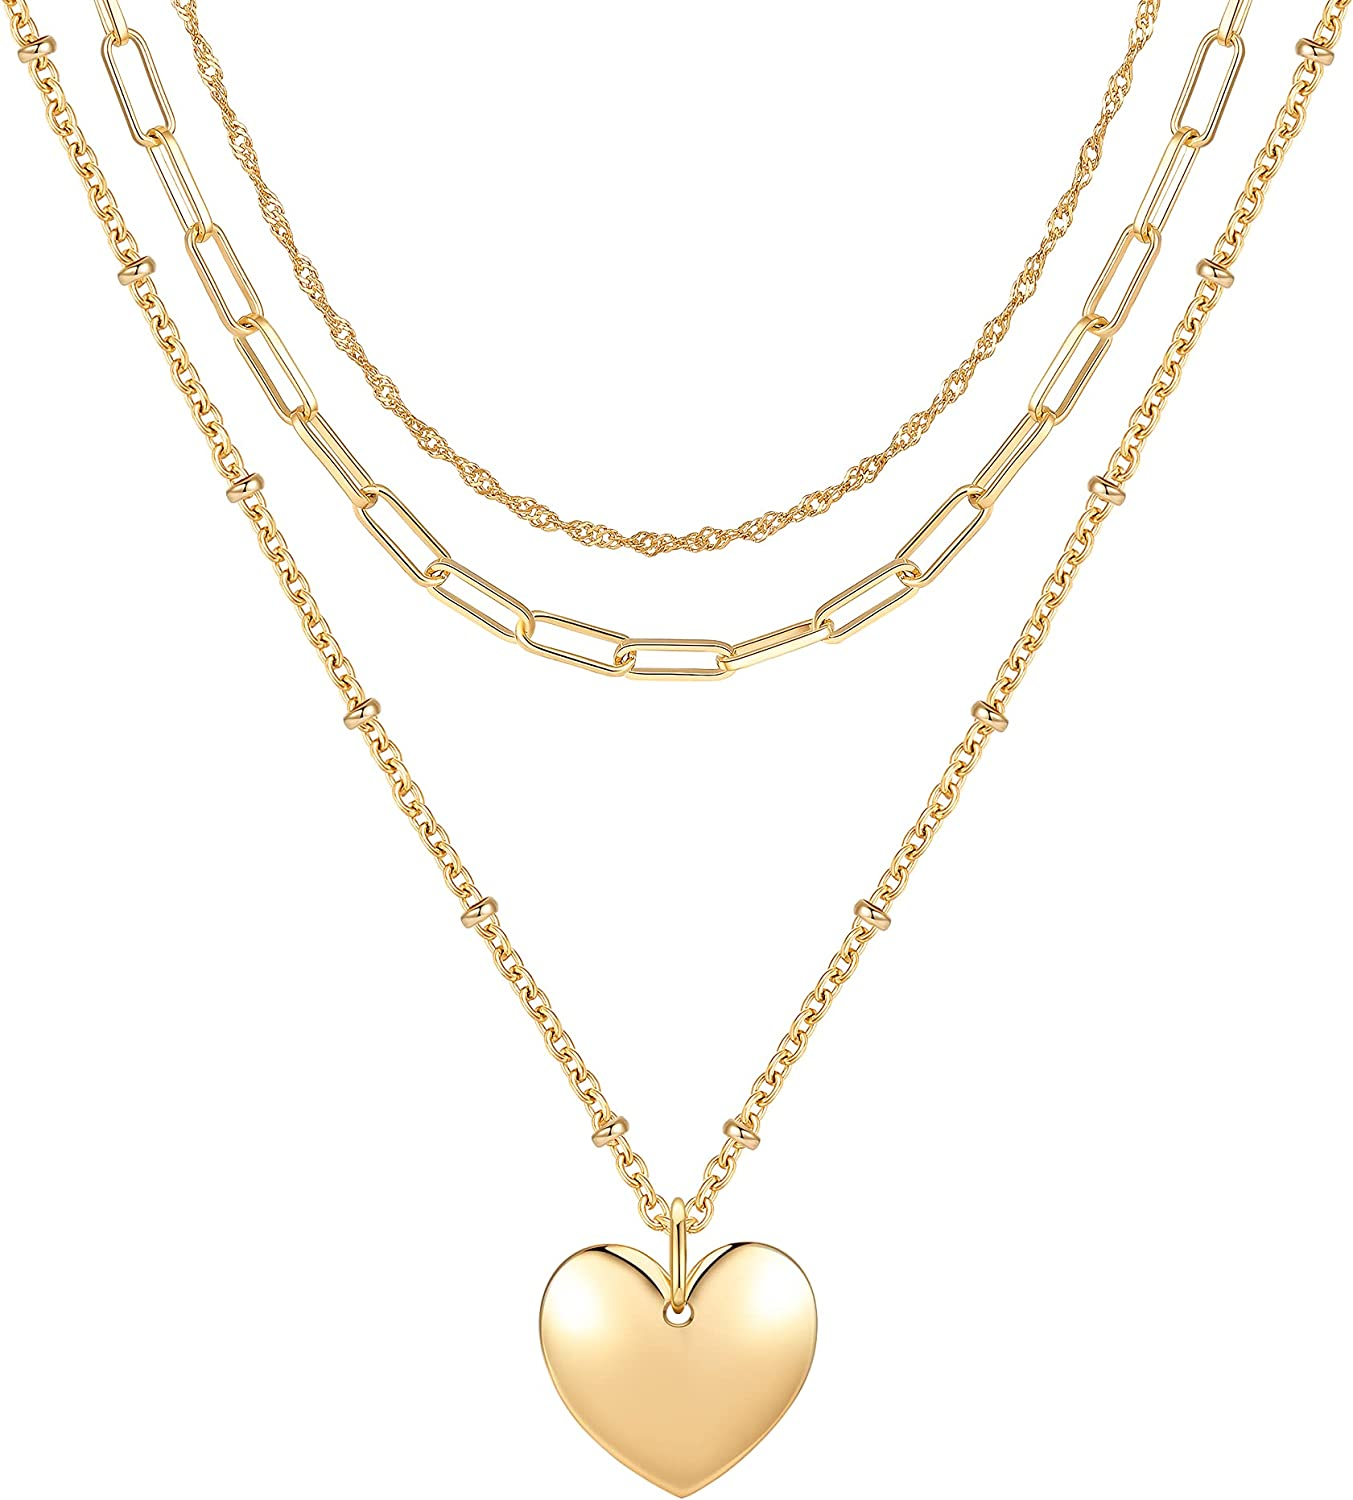 Initial Heart Pendant 3 Layered Chain Necklaces for Women 14K Gold Plated Choker Handmade Dainty Long Necklace Unique Design Gift for Mom